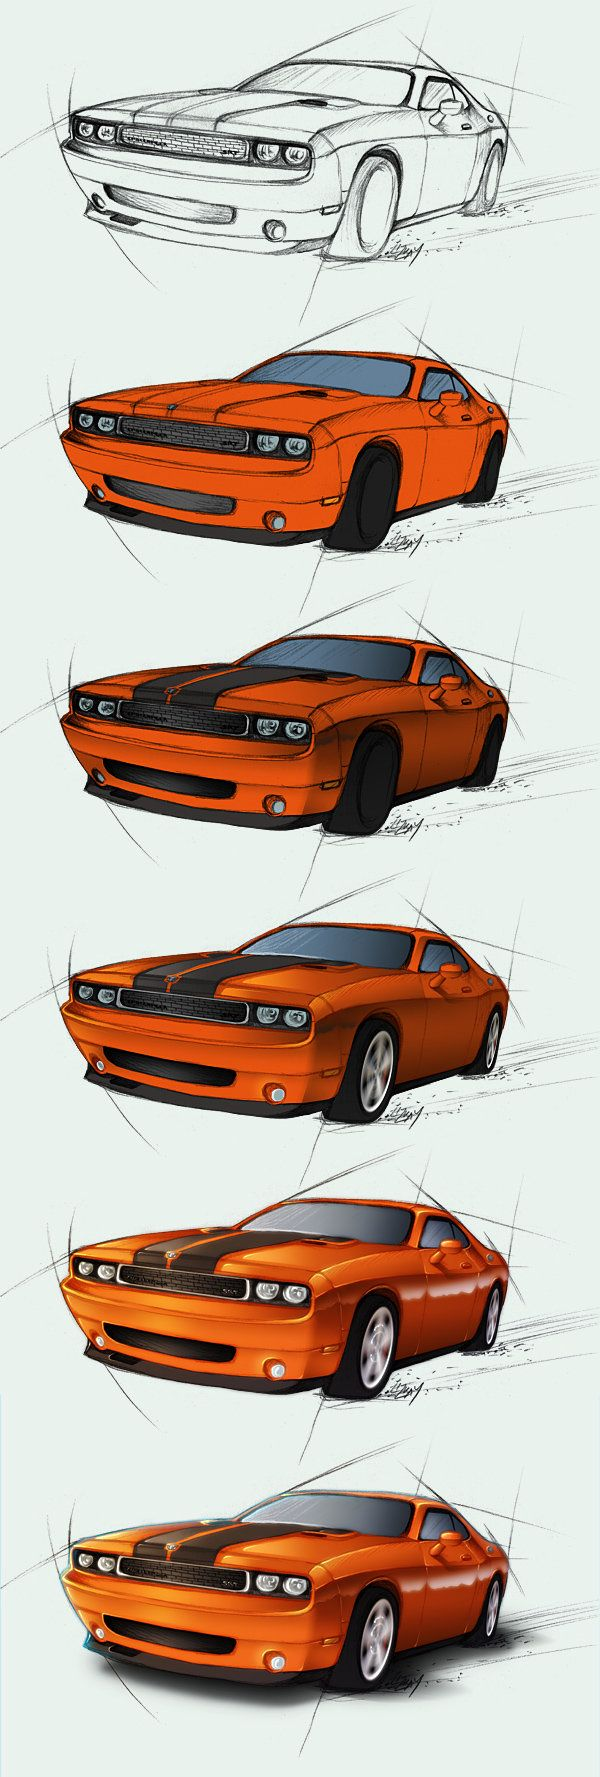 Dodge Challenger SRT - steps by Lizkay on DeviantArt